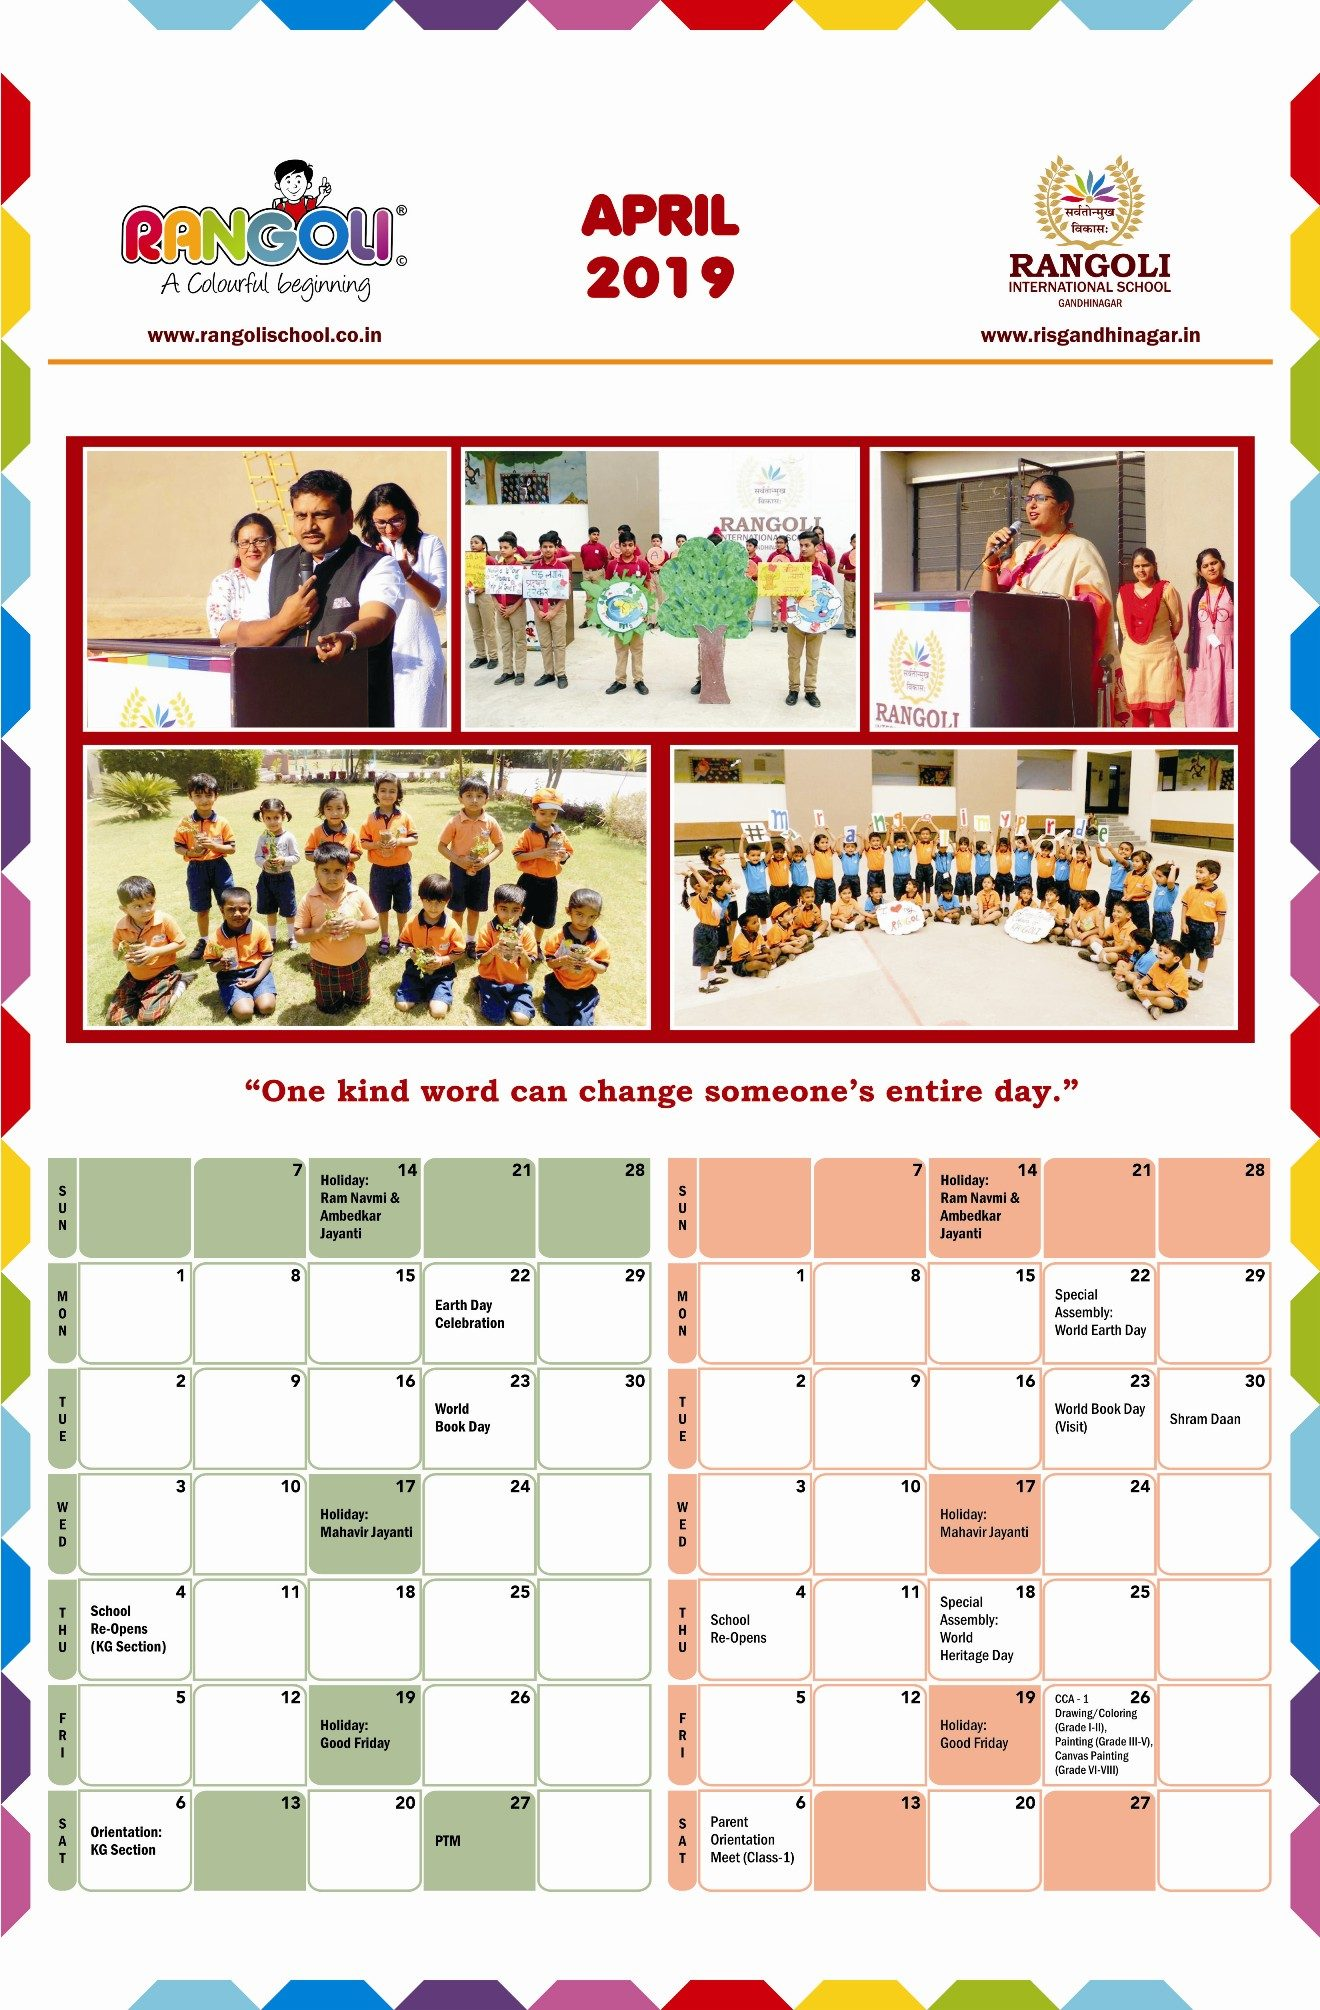 Best CBSE School in Gandhinagar